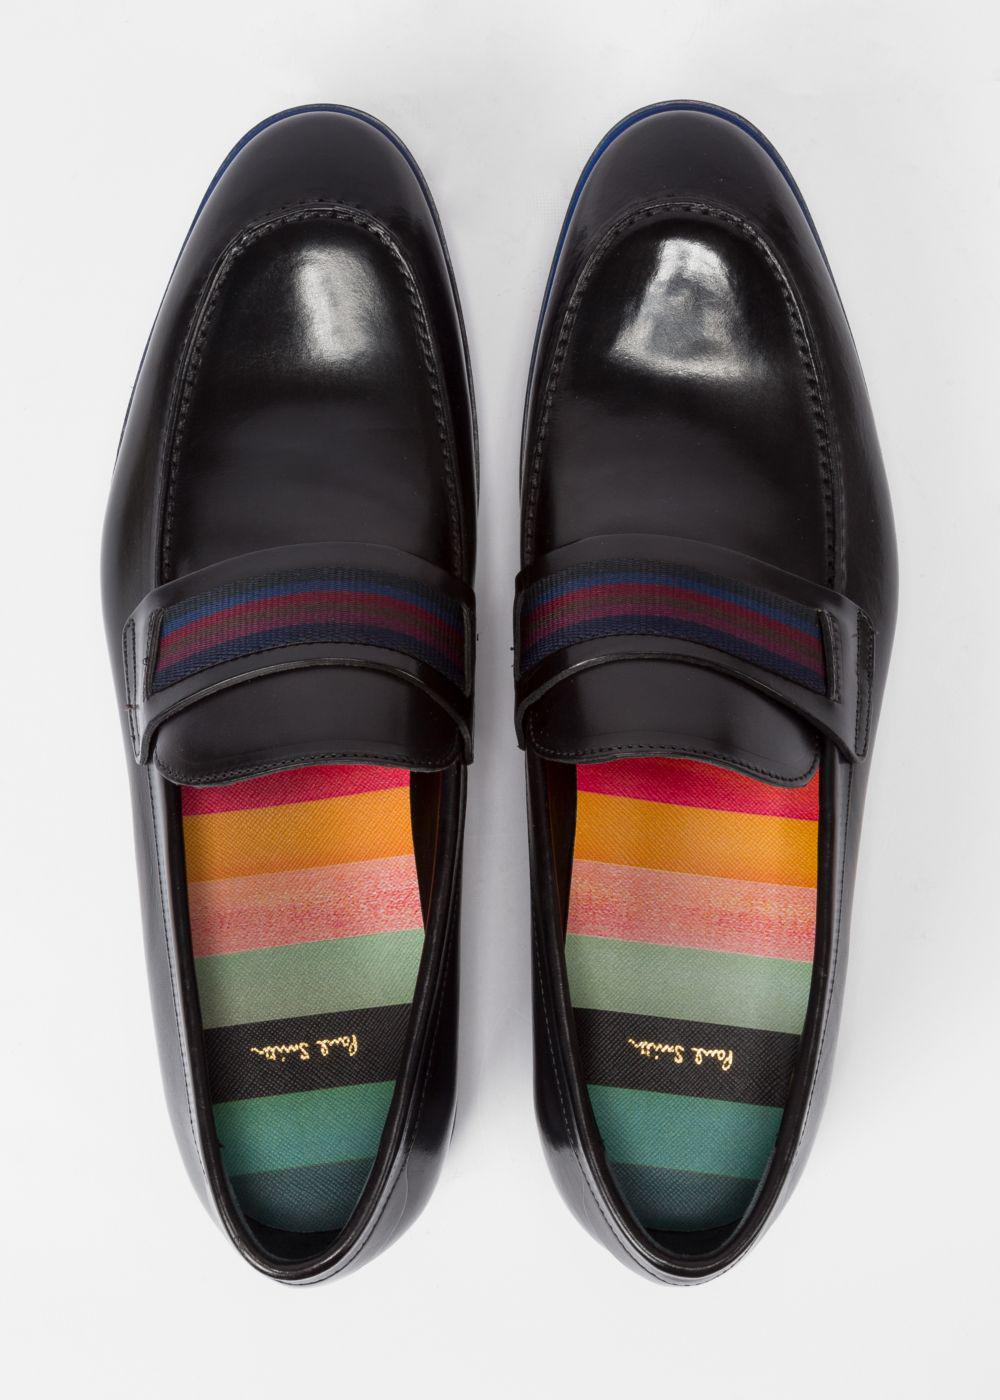 Paul Smith Men's Black Leather 'Bly' Loafers for Men